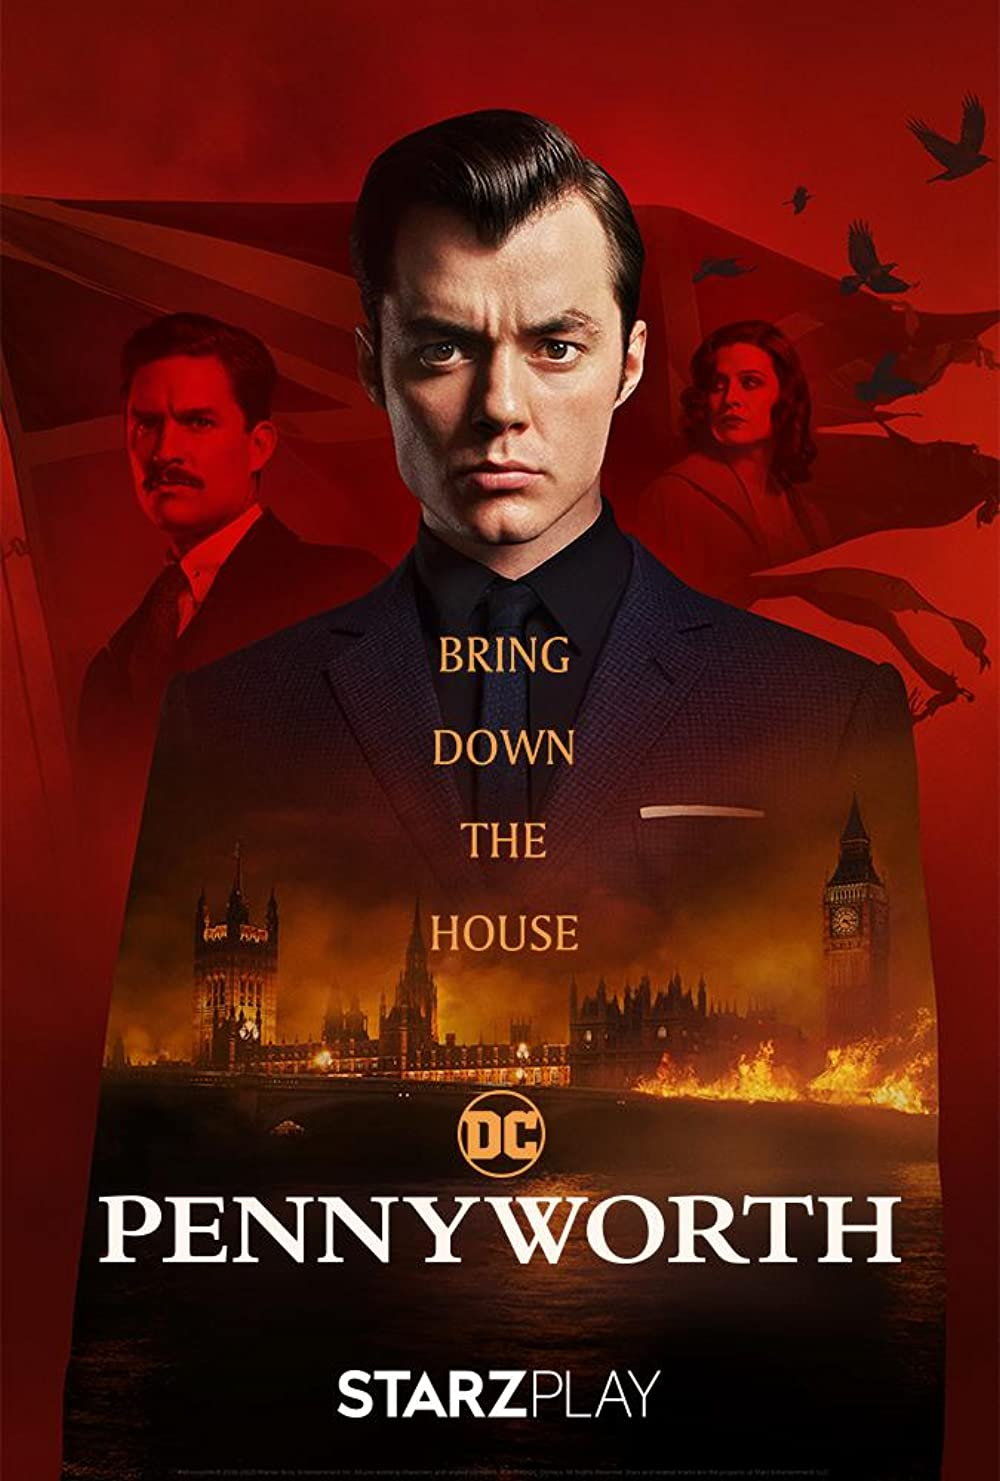 Pennyworth poster